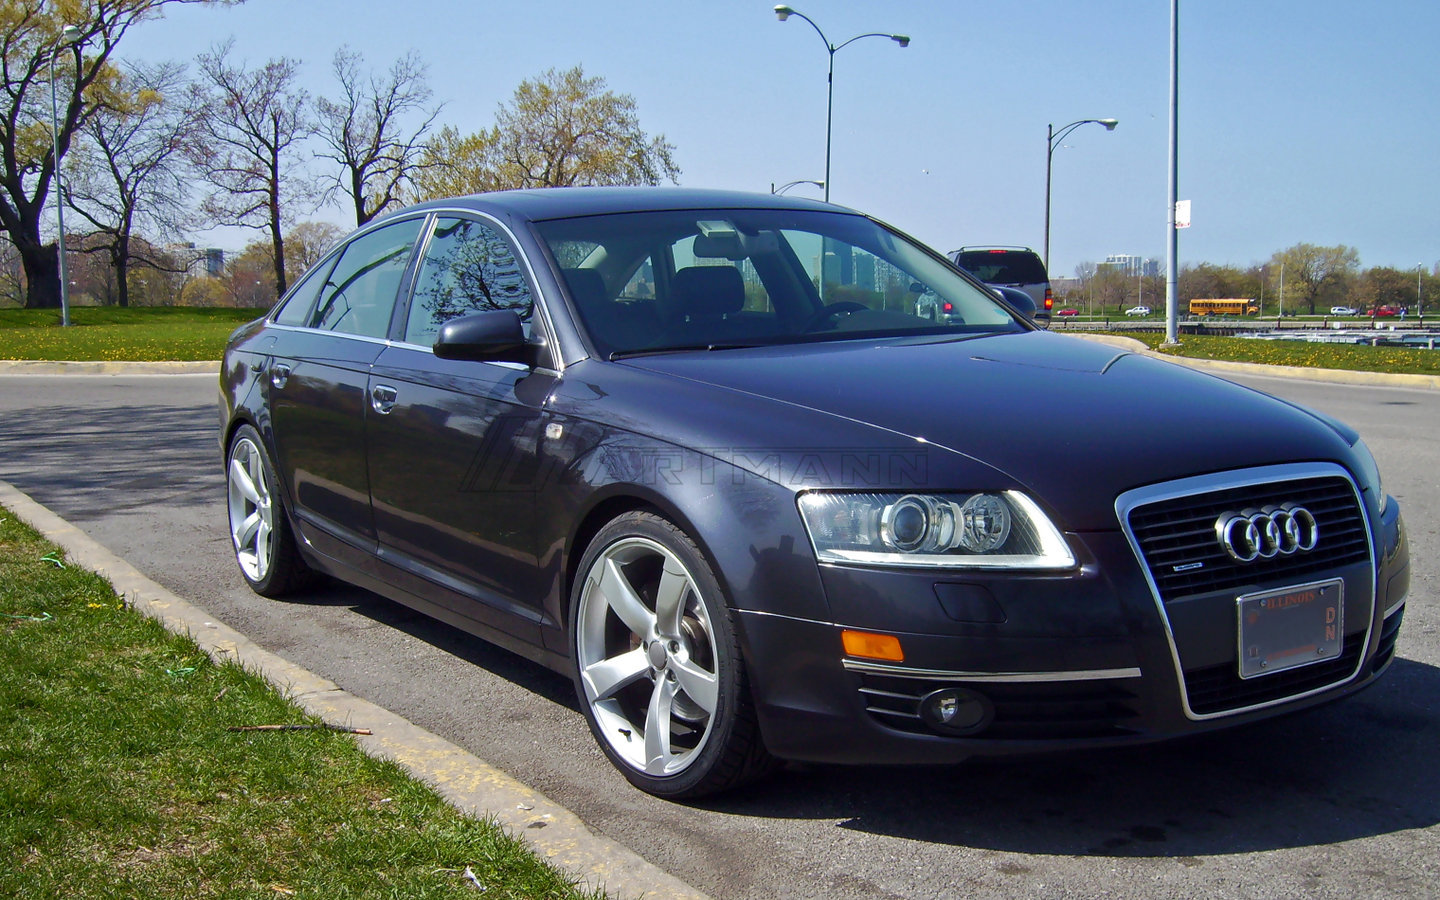 2009 audi a6 avant 4f c6 pictures information and. Black Bedroom Furniture Sets. Home Design Ideas